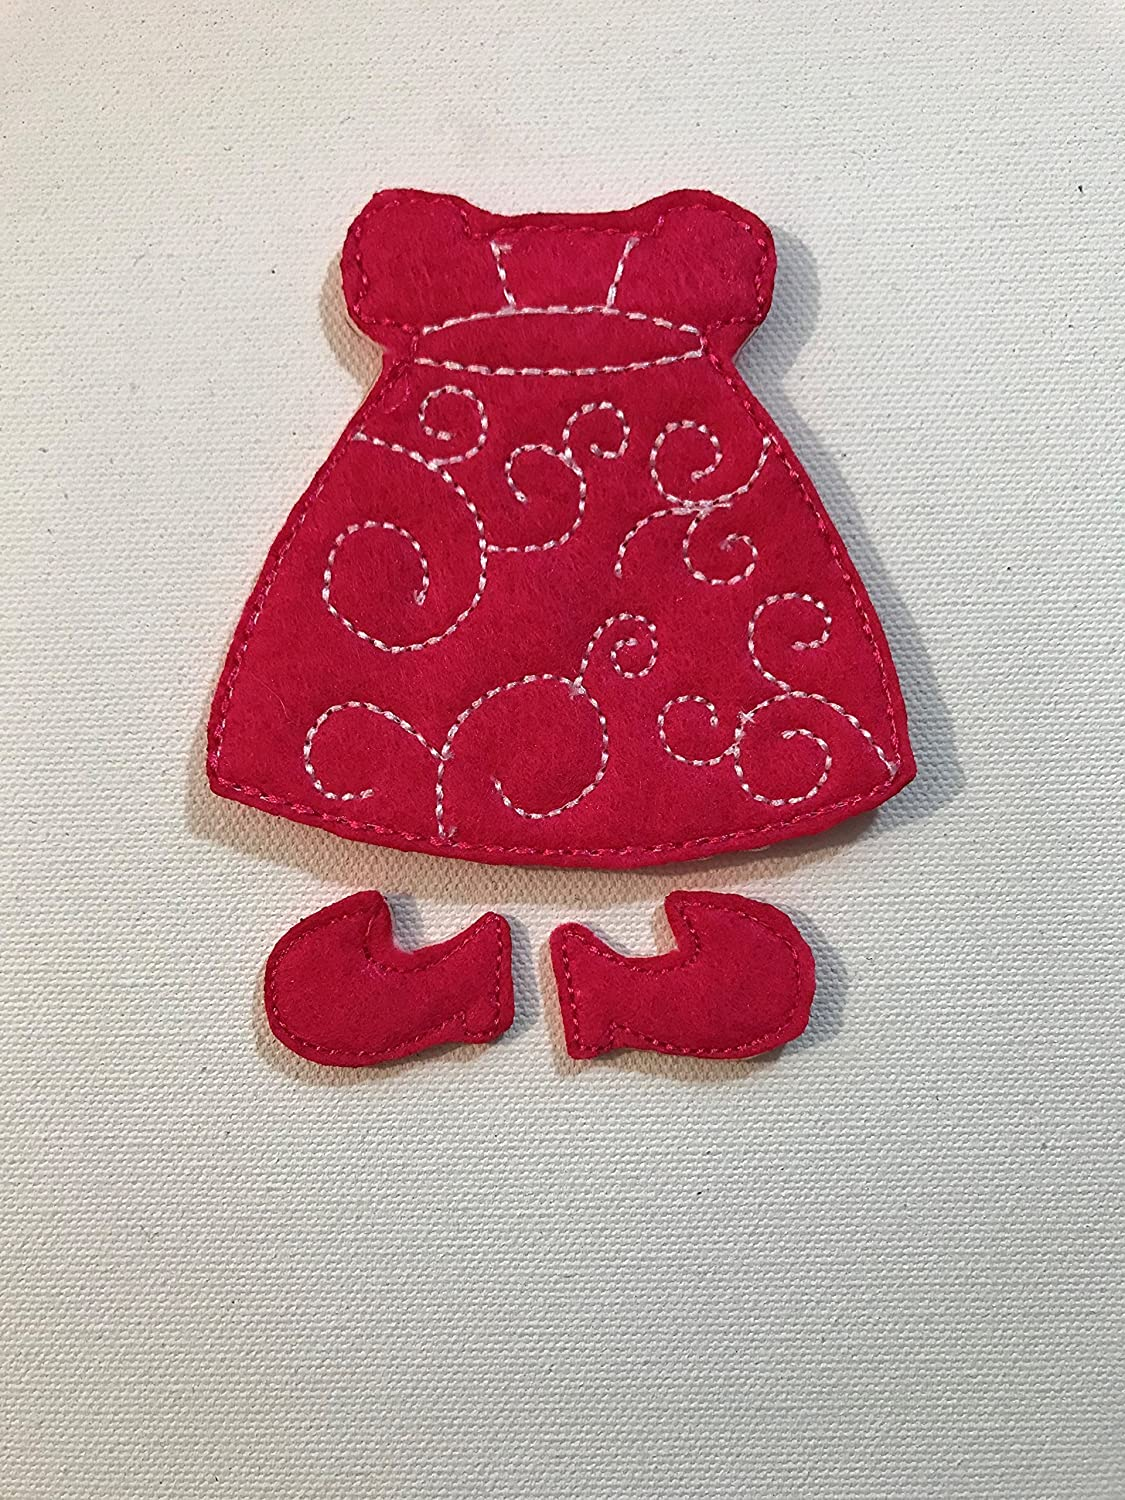 Non-Paper Flat Doll-9 with Nightgown and Outfit